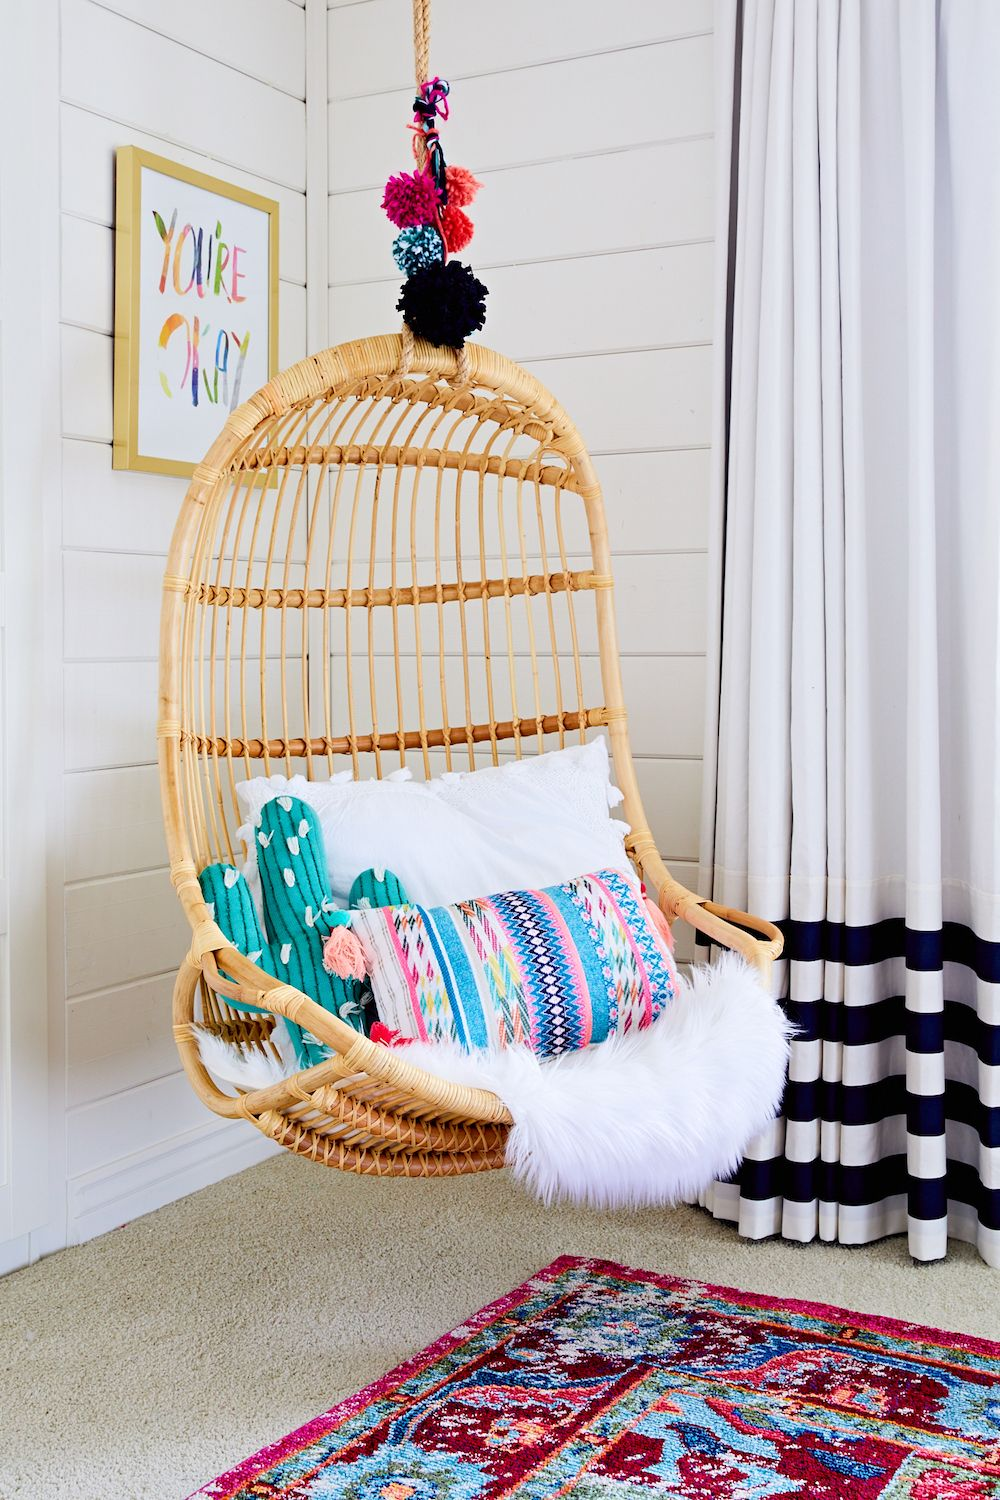 Hanging Kids Chair Dx Racer Trendspotting Chairs Are Swinging Into Design Project Nursery Rattan Seating Bedroom